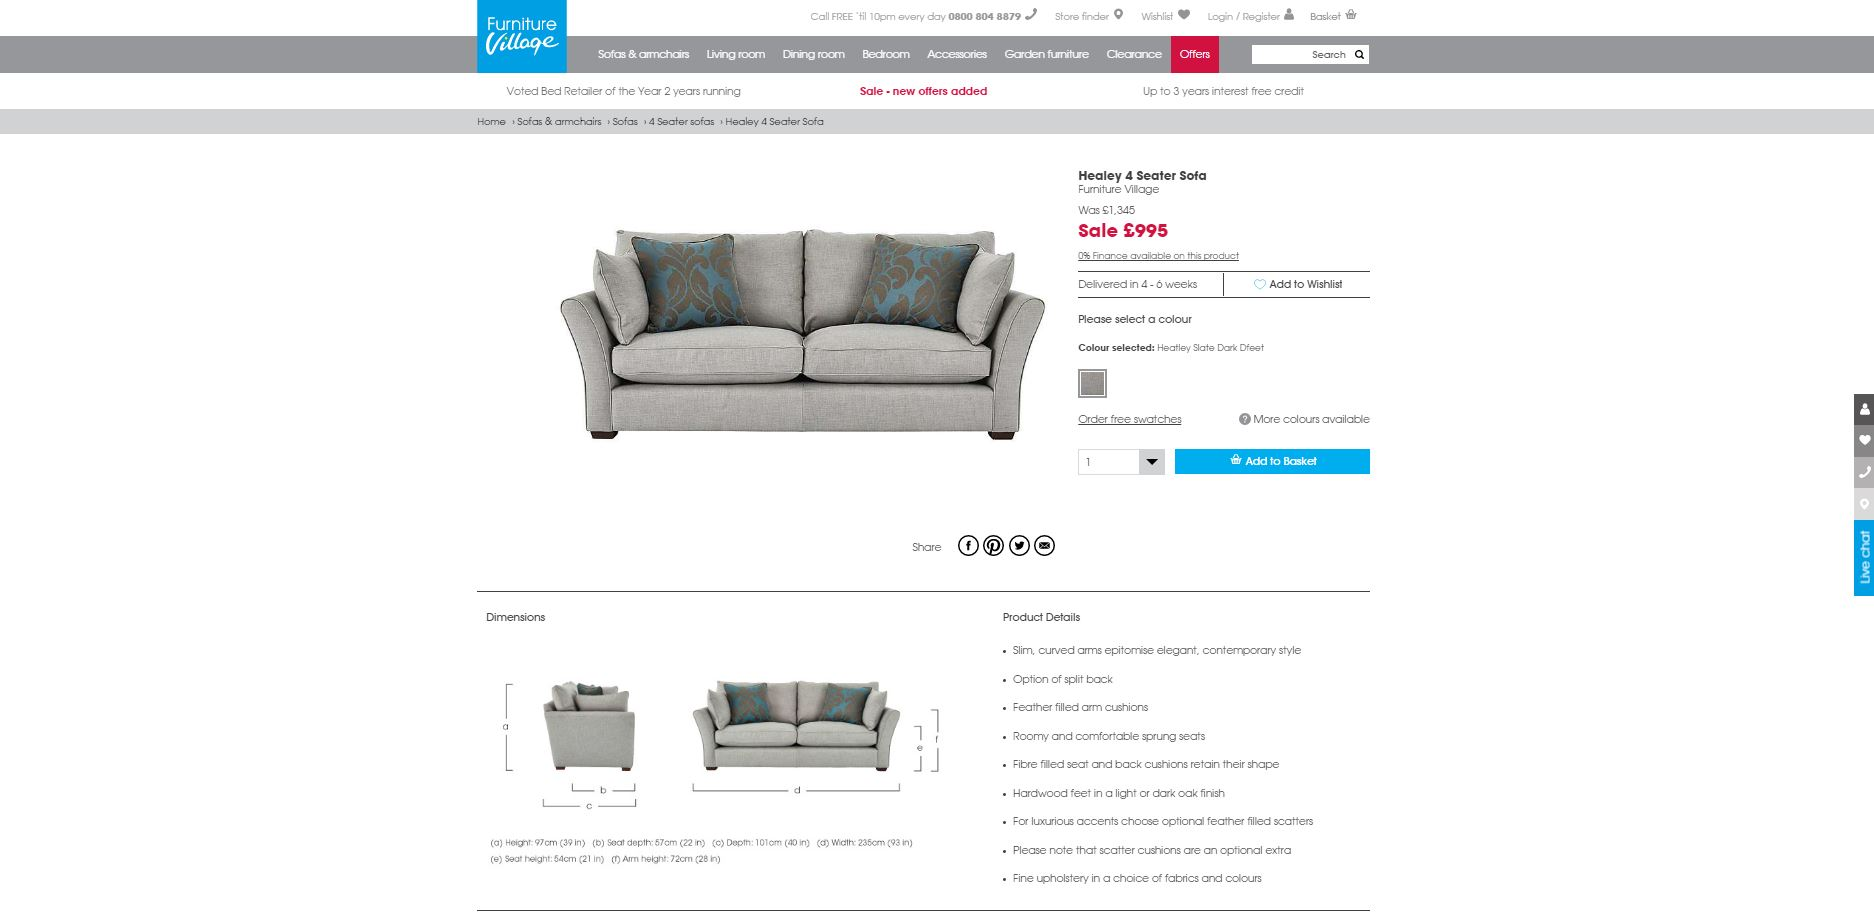 Are Furniture Village Sofas Good Quality